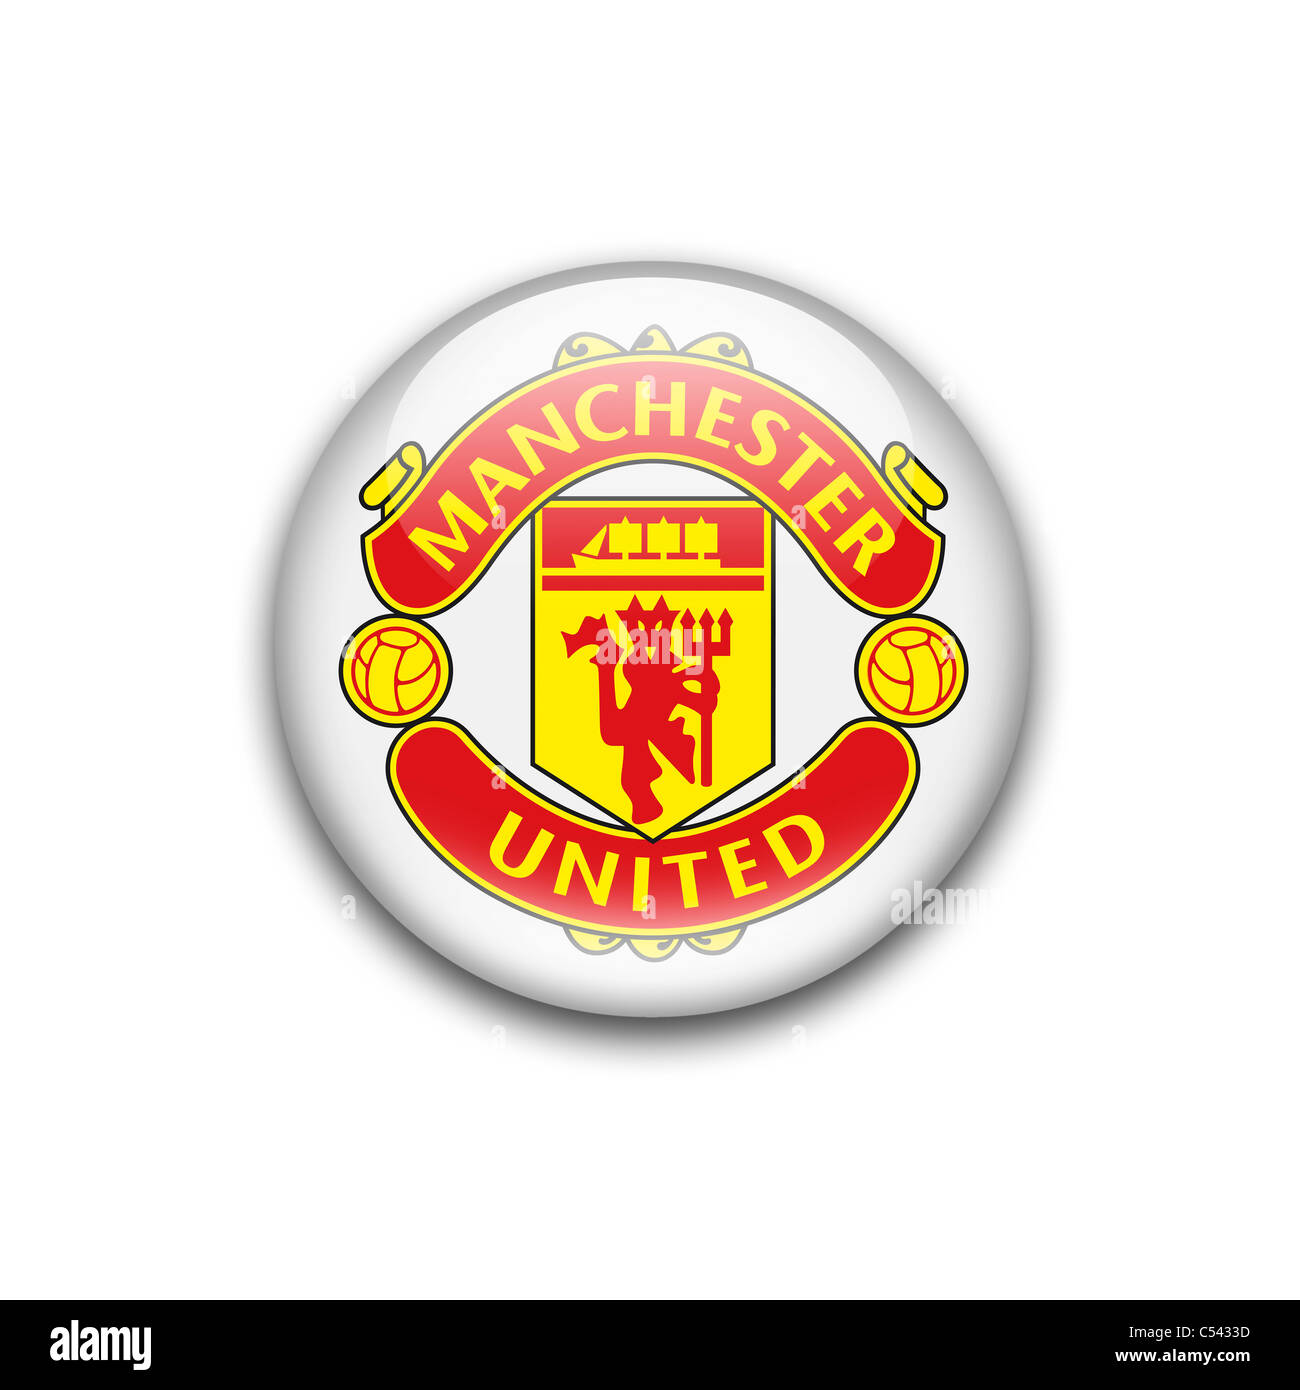 Manchester united flag logo symbol icon stock photo 37584273 alamy manchester united flag logo symbol icon voltagebd Image collections